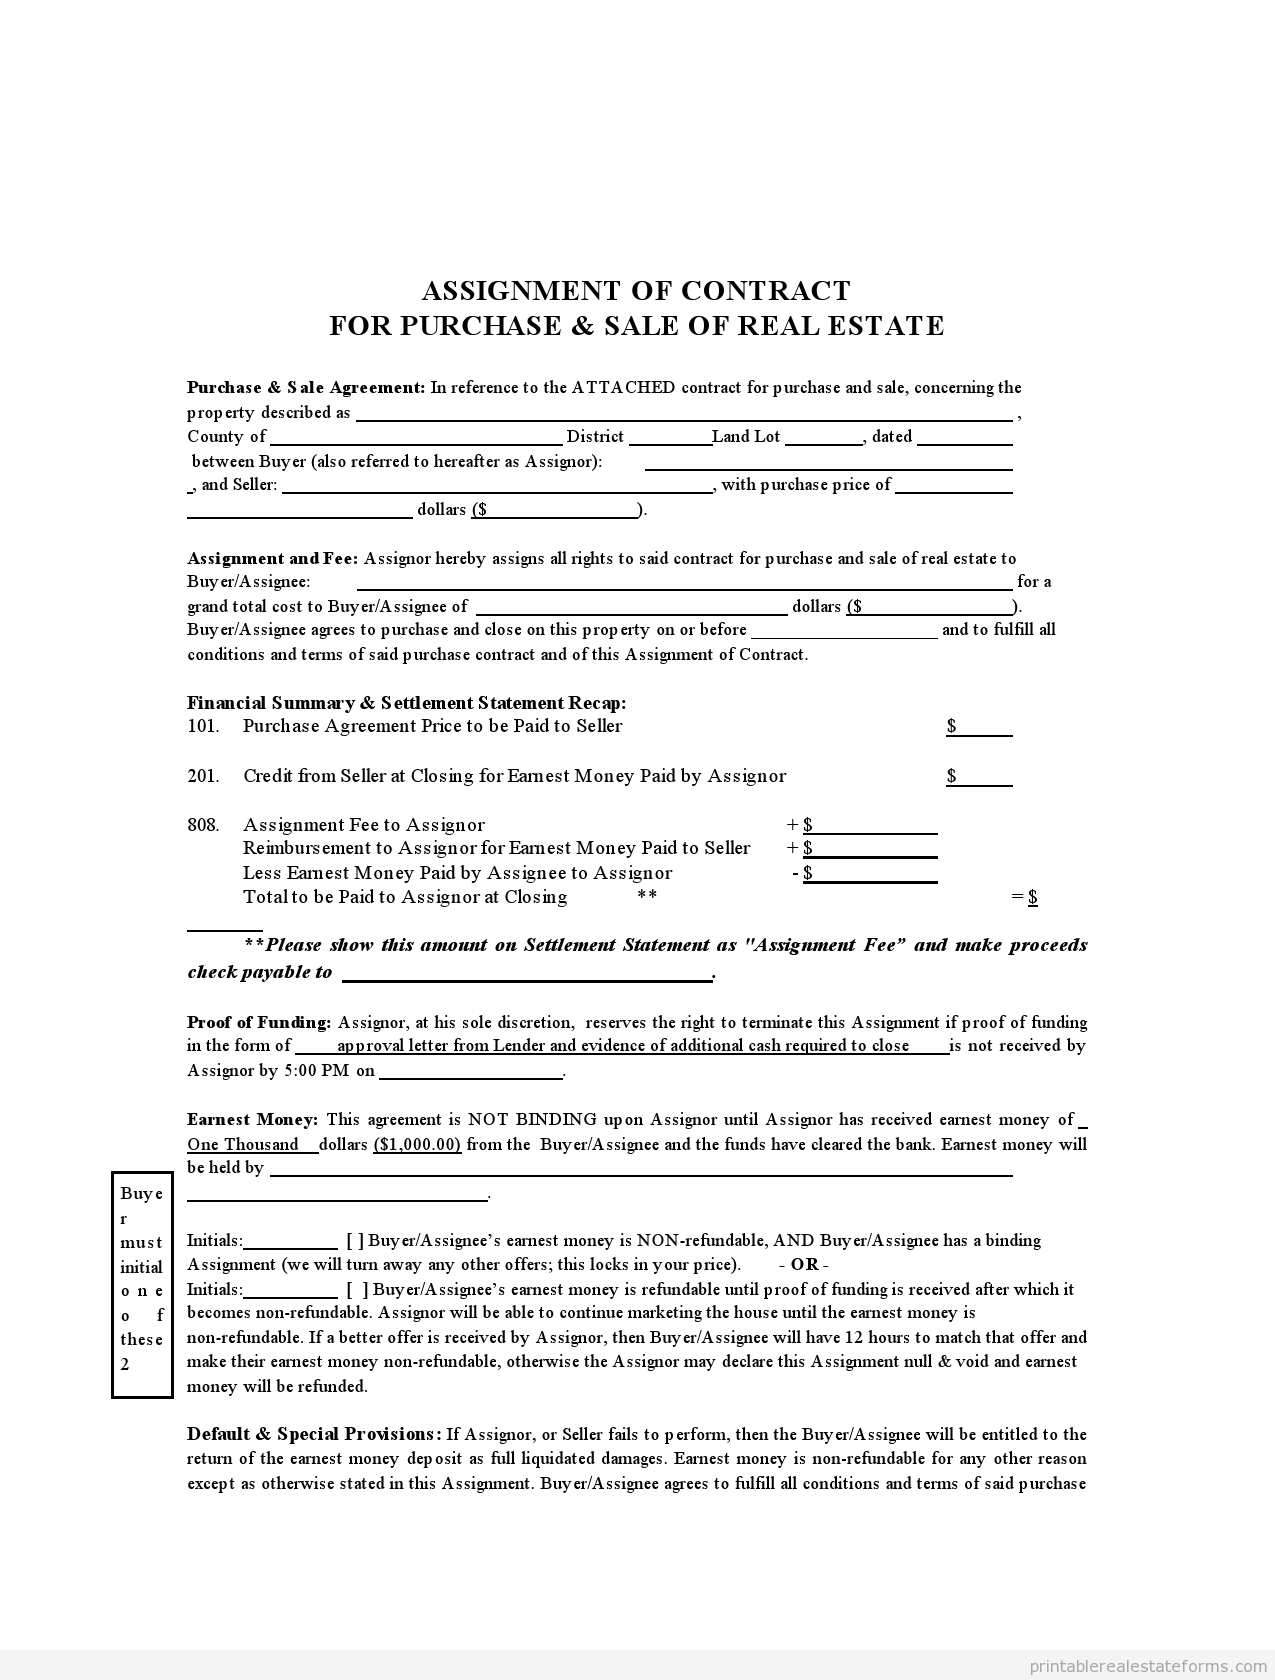 Sample Printable Assignment Of Contract Form  Sample Real Estate